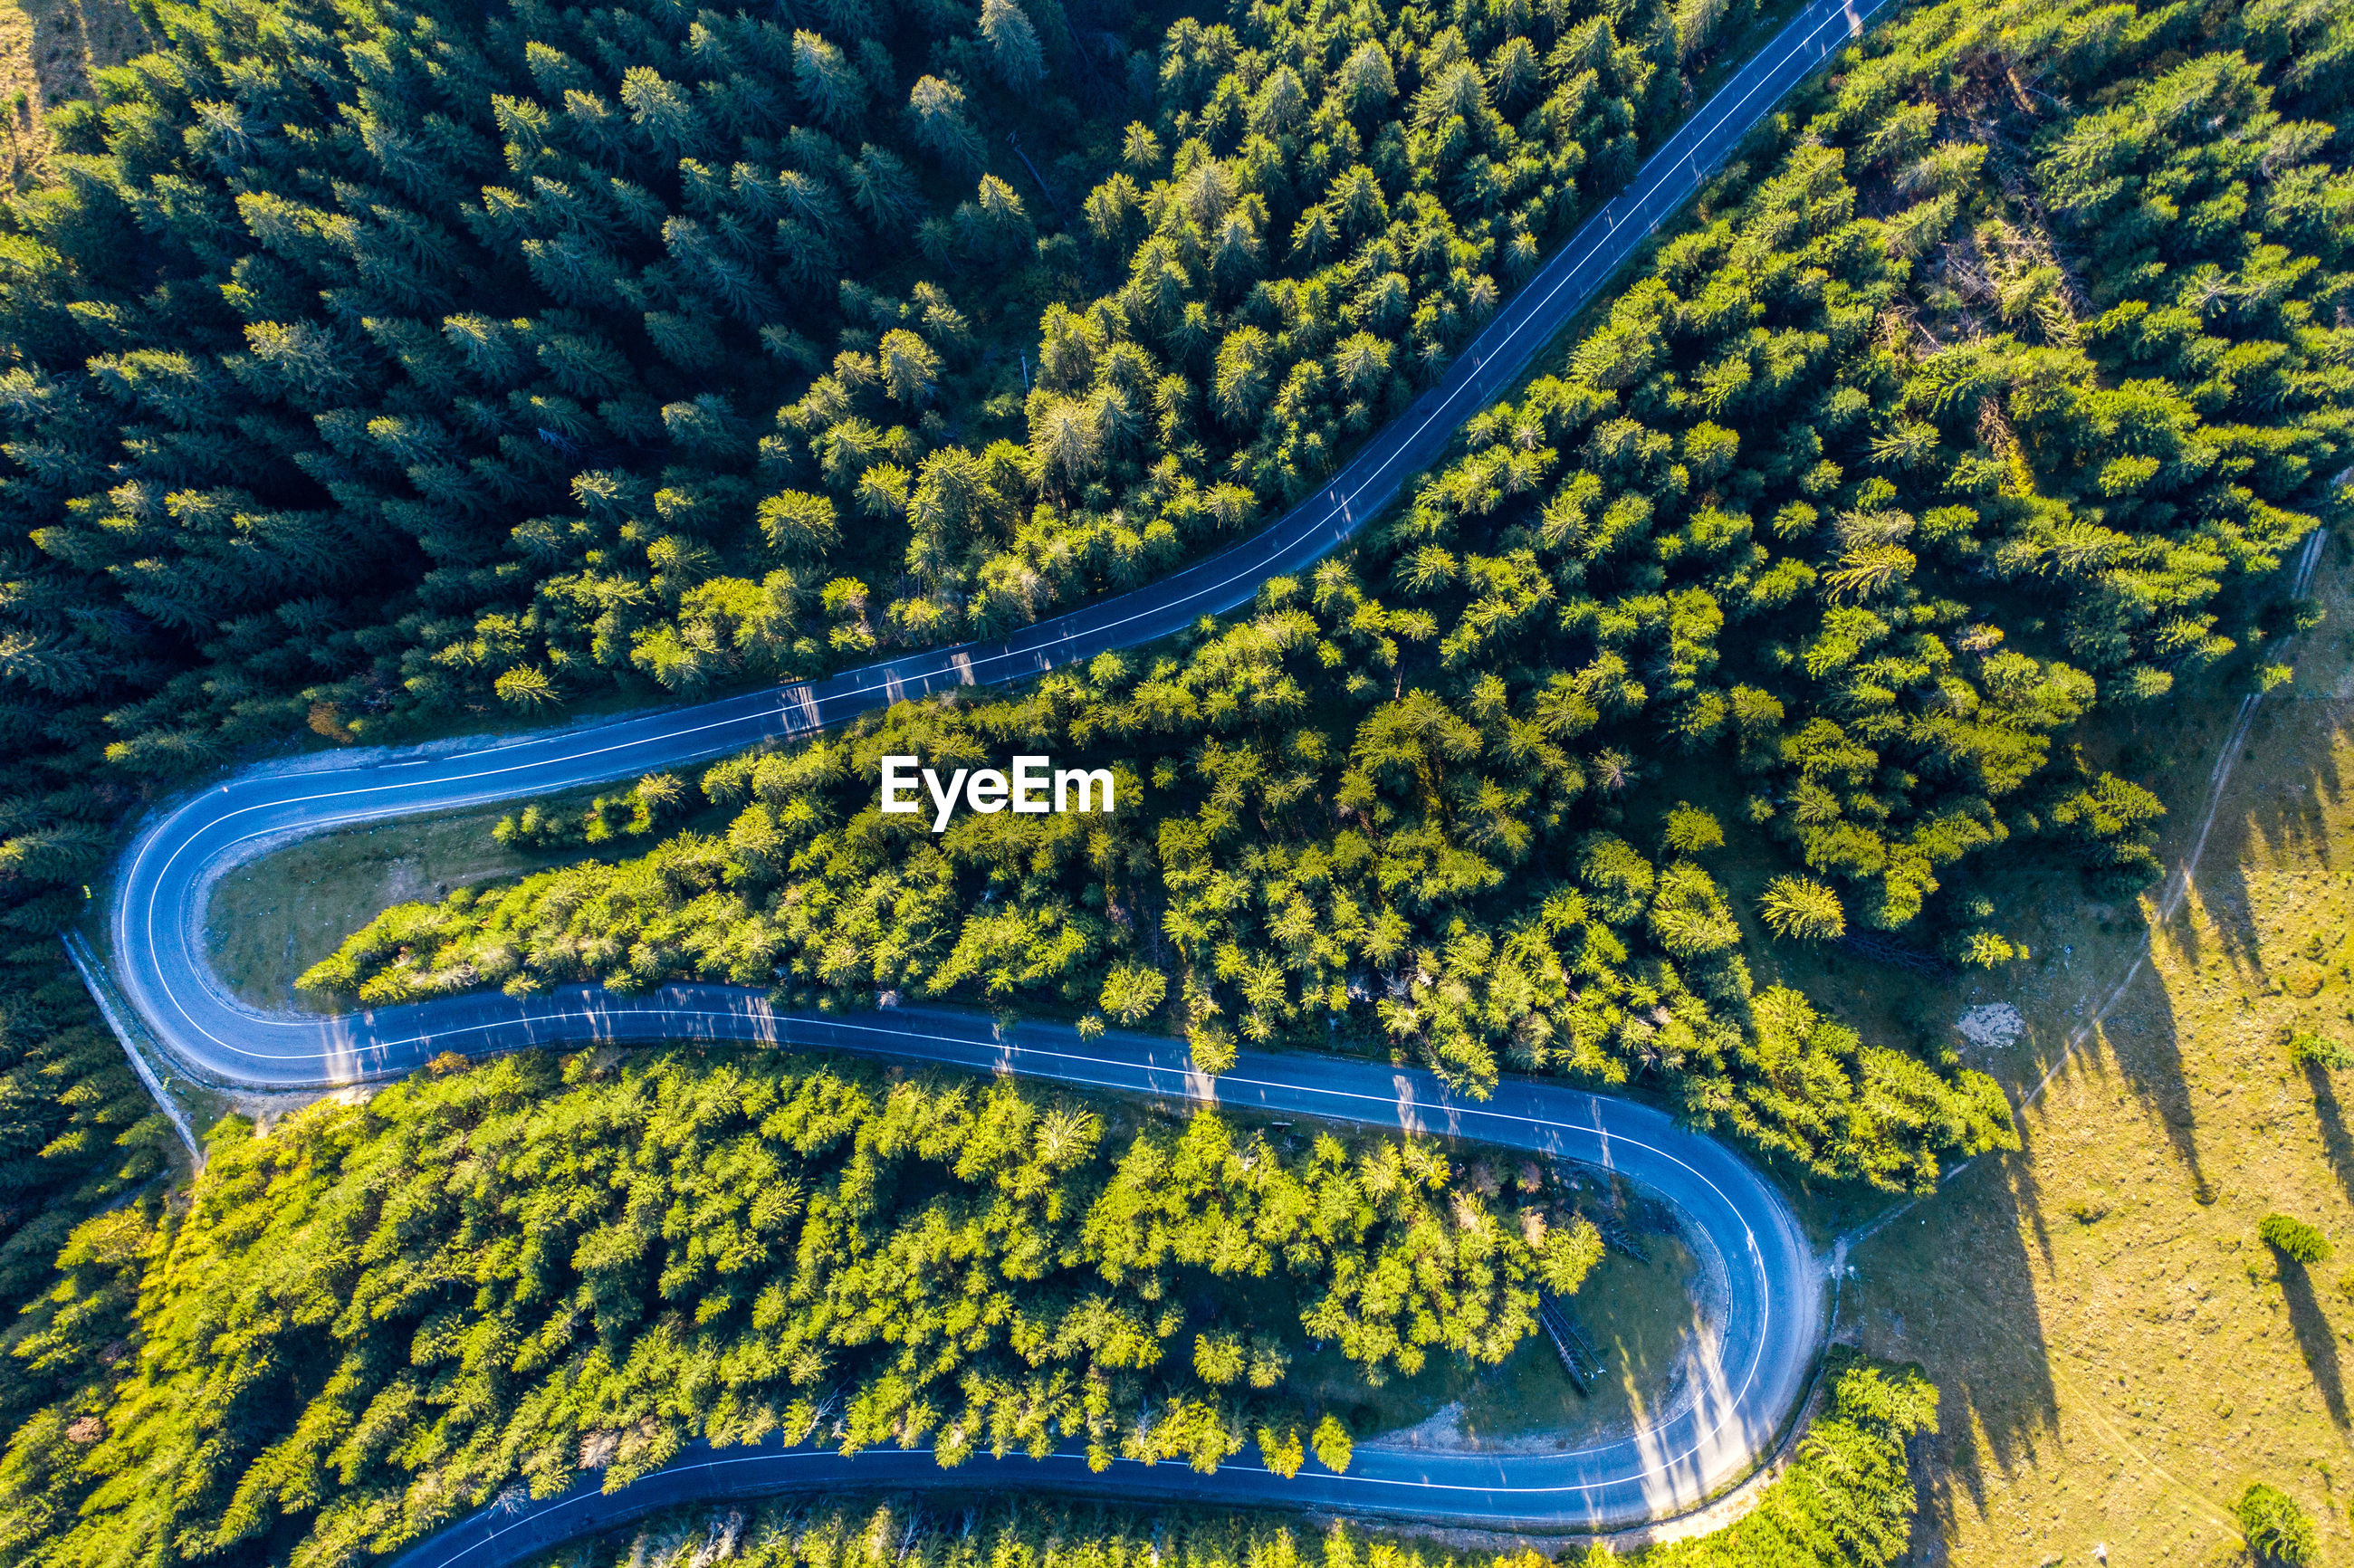 Aerial view of road amidst trees on land